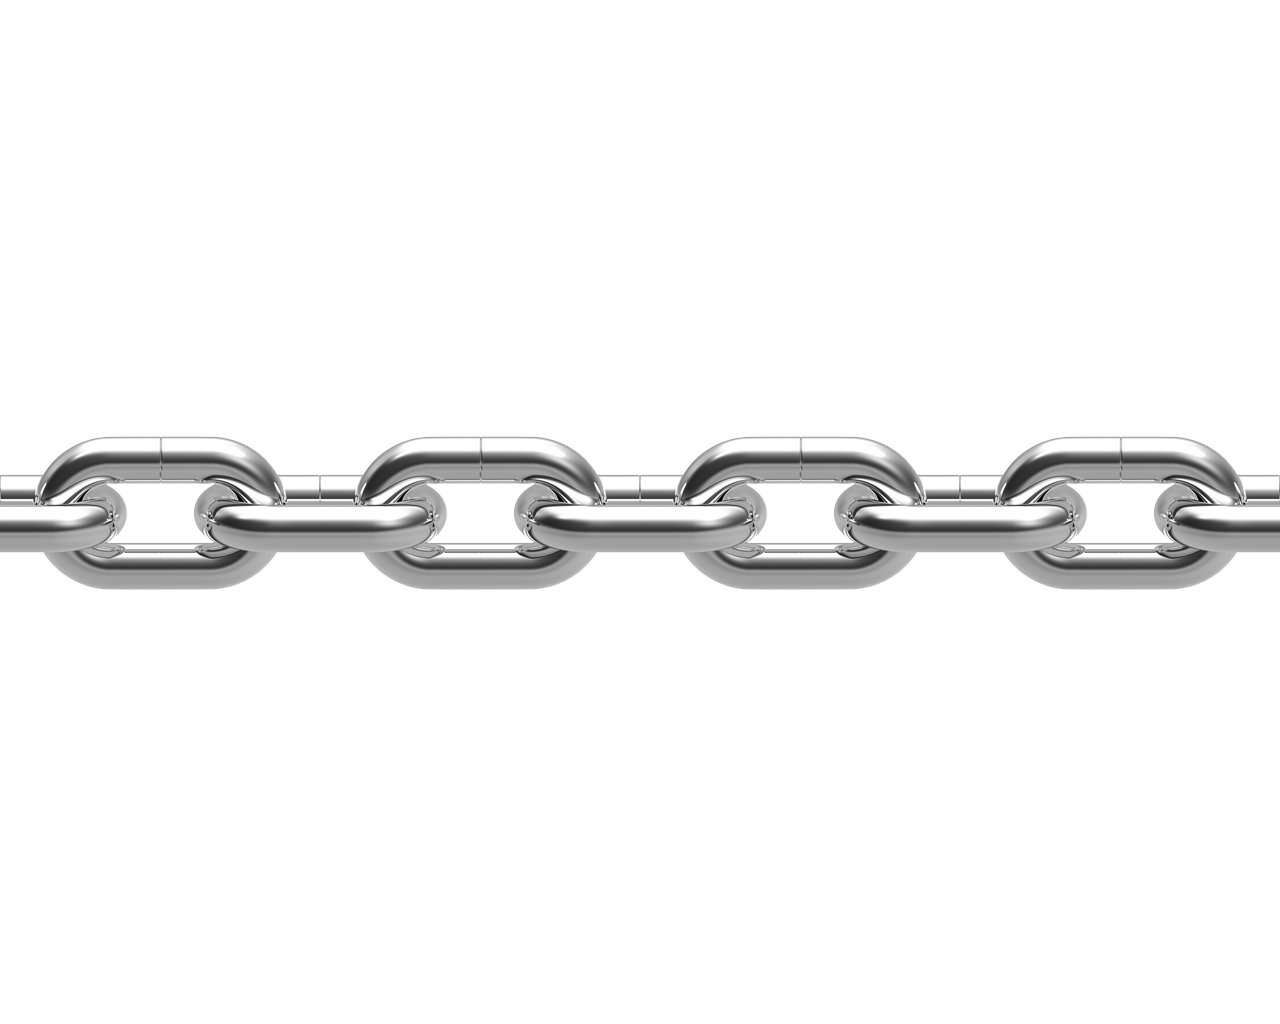 clipart library library Collection of free download. Transparent chain